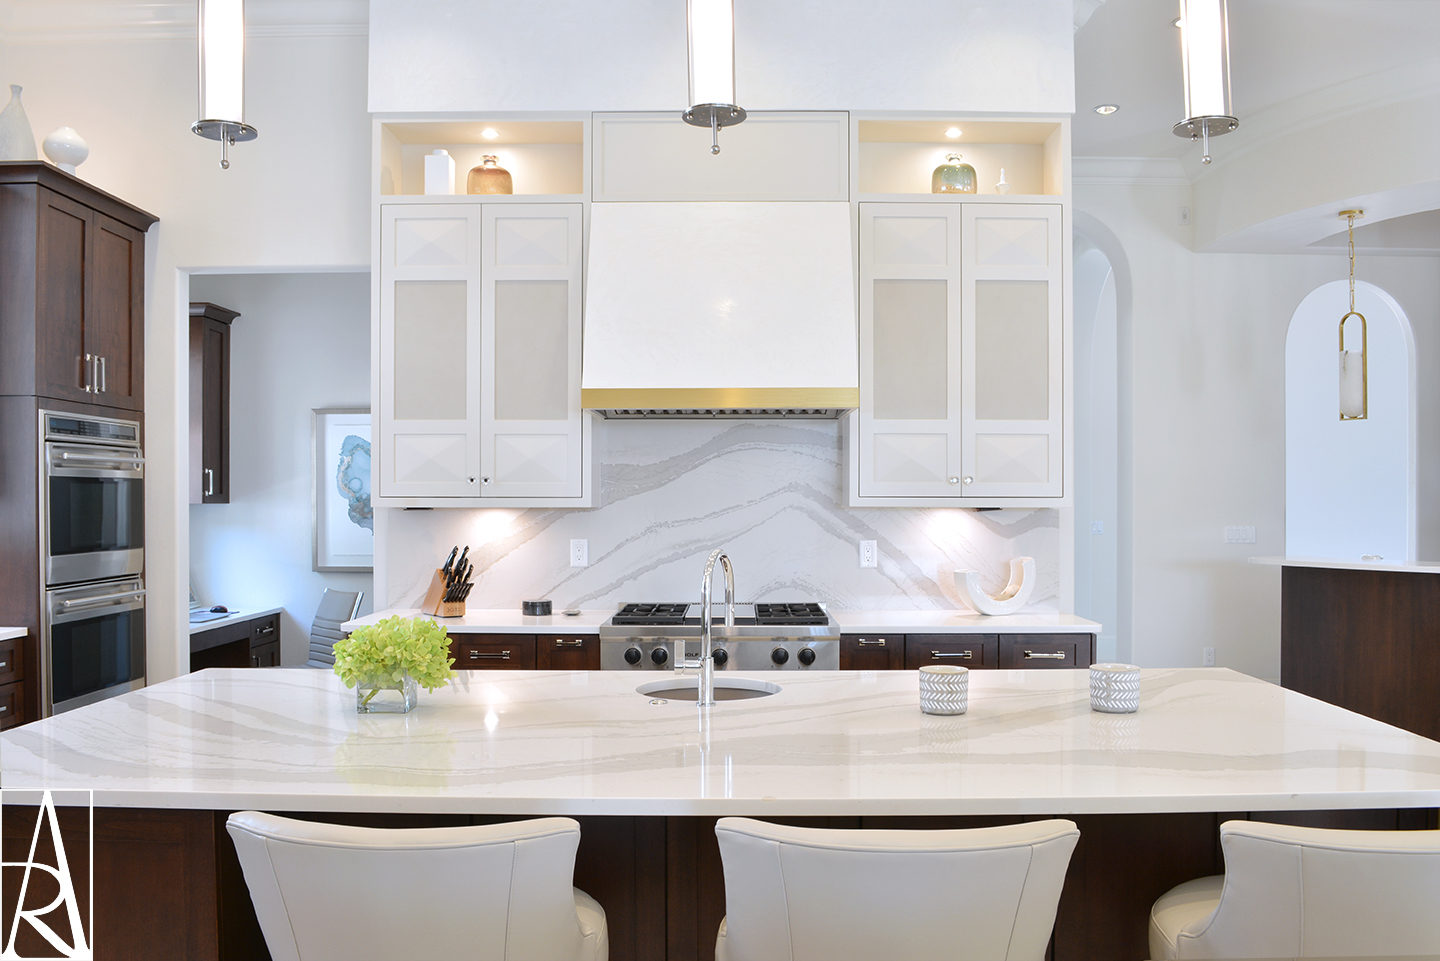 A transitional kitchen design with two tone cabinets and quartz waterfall island countertop